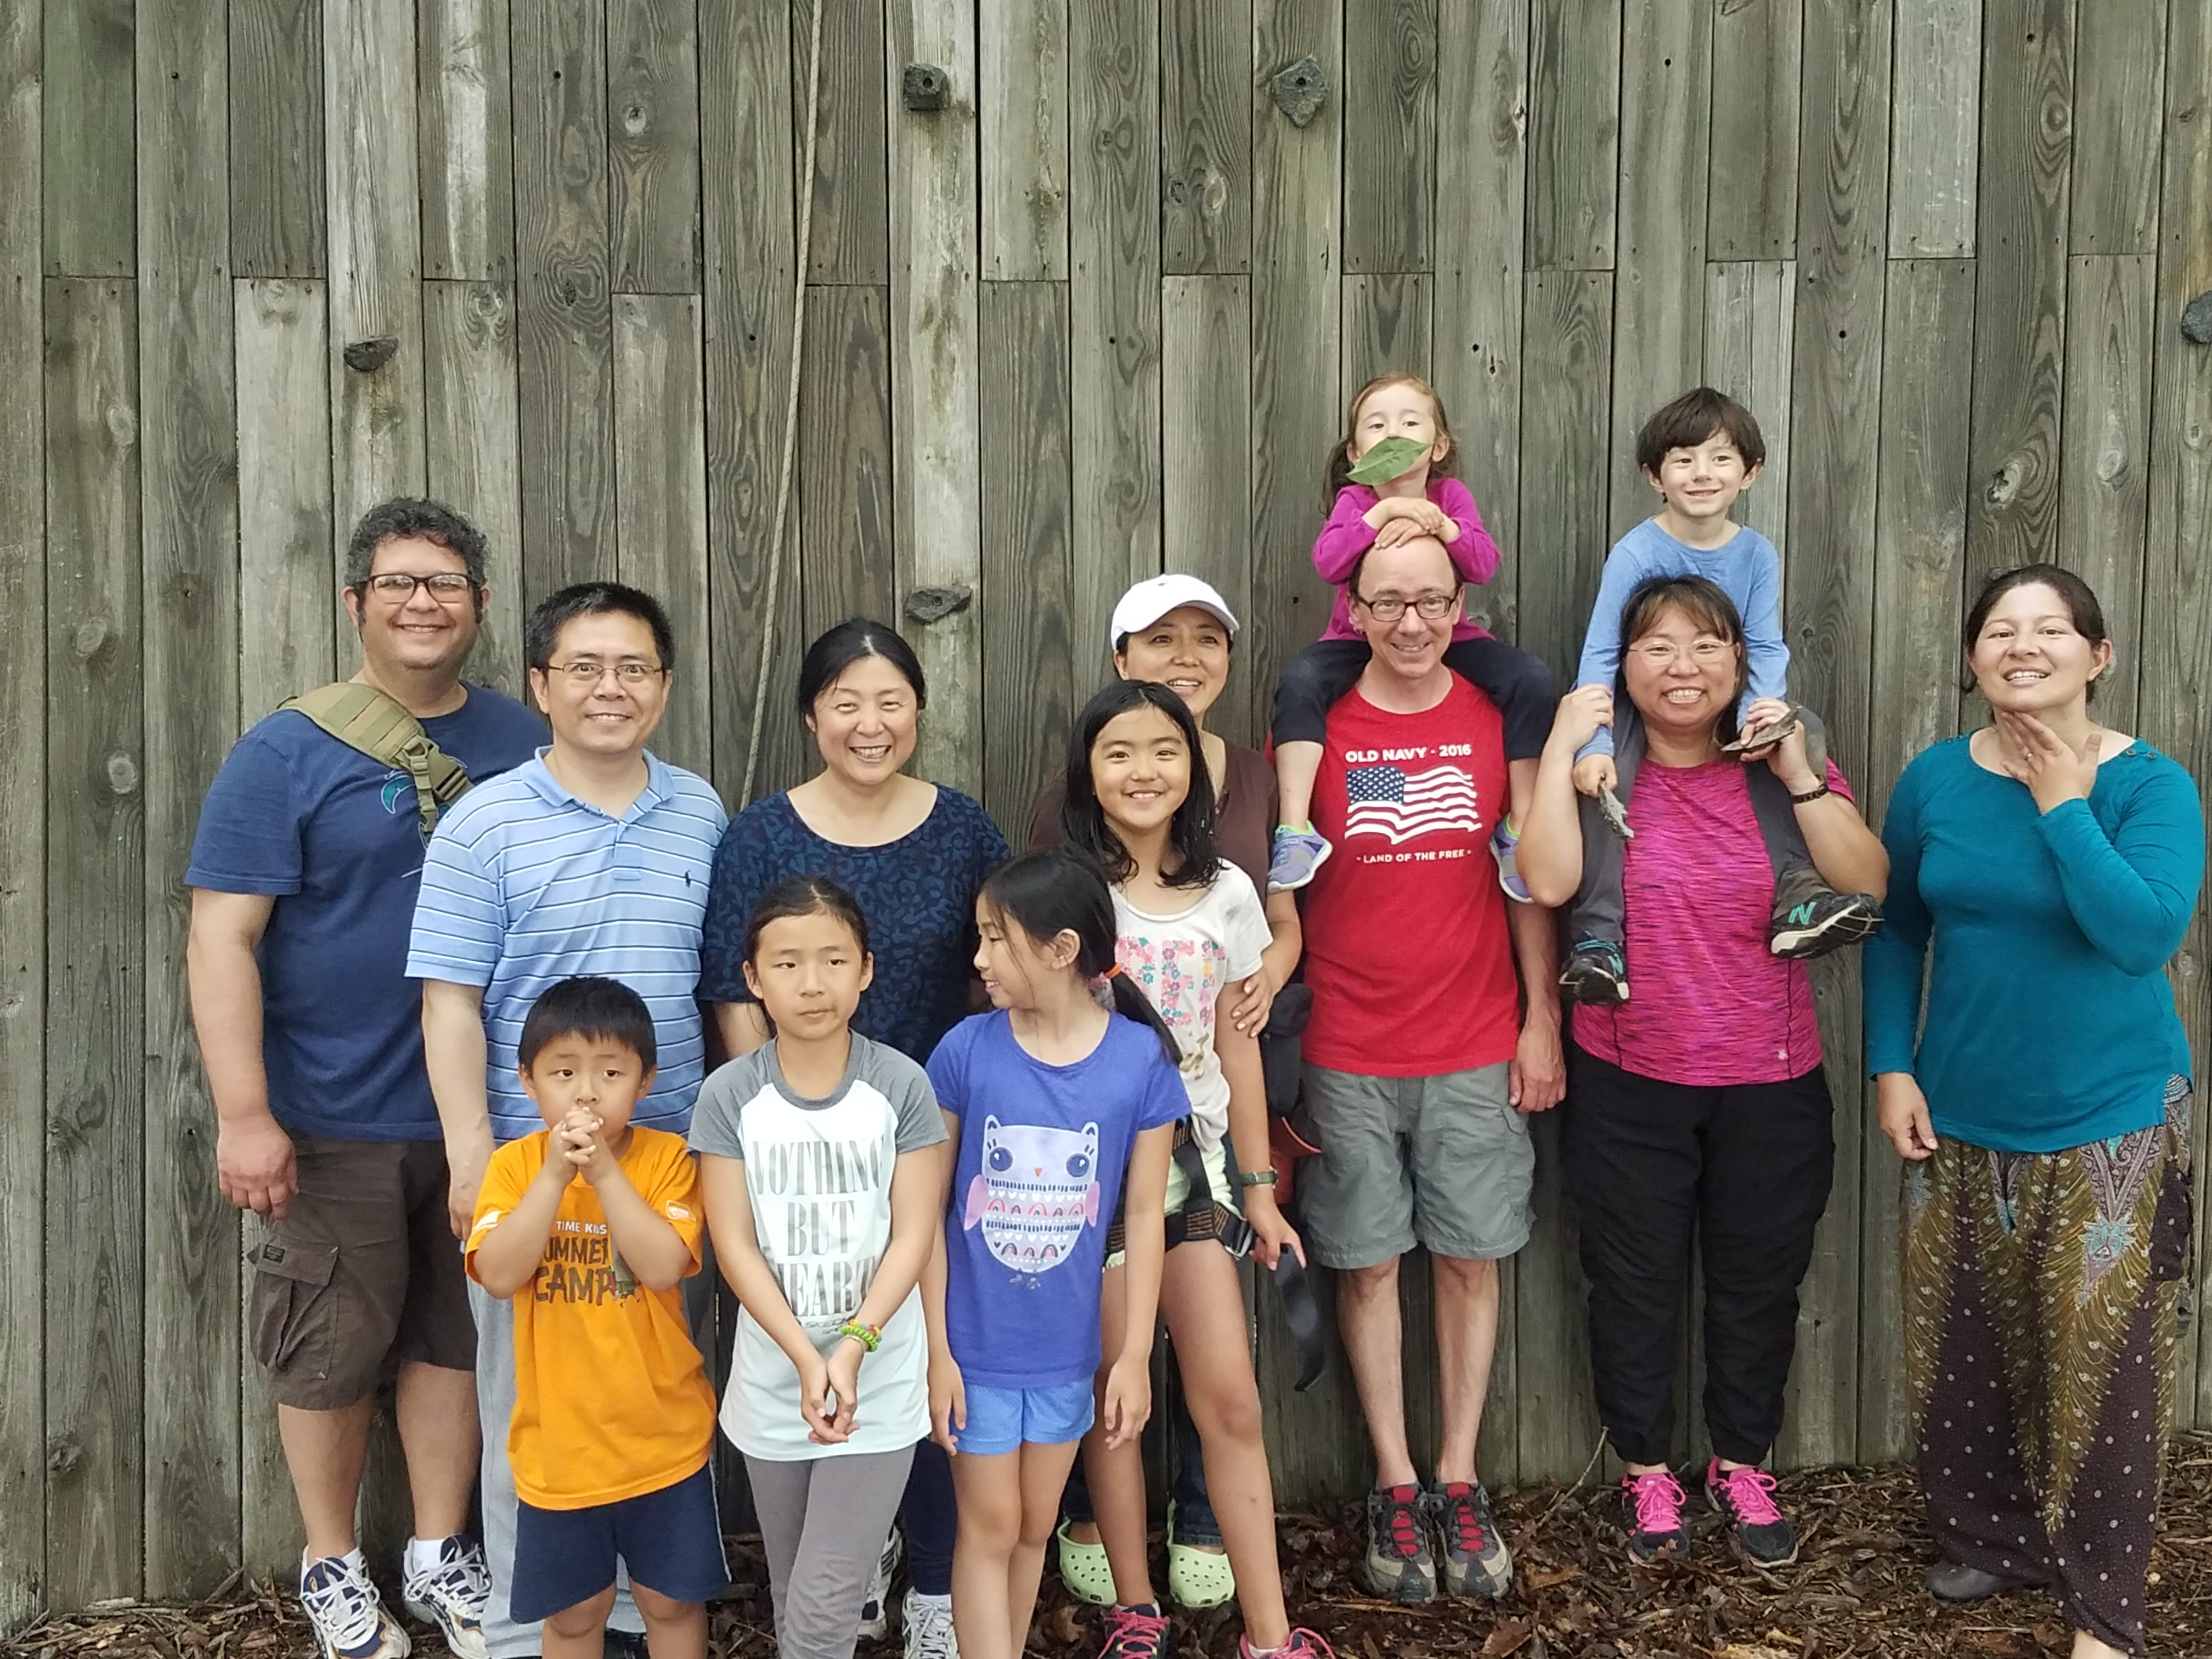 What Some Families Of Children With >> Family Weekend Camp Tall Timbers